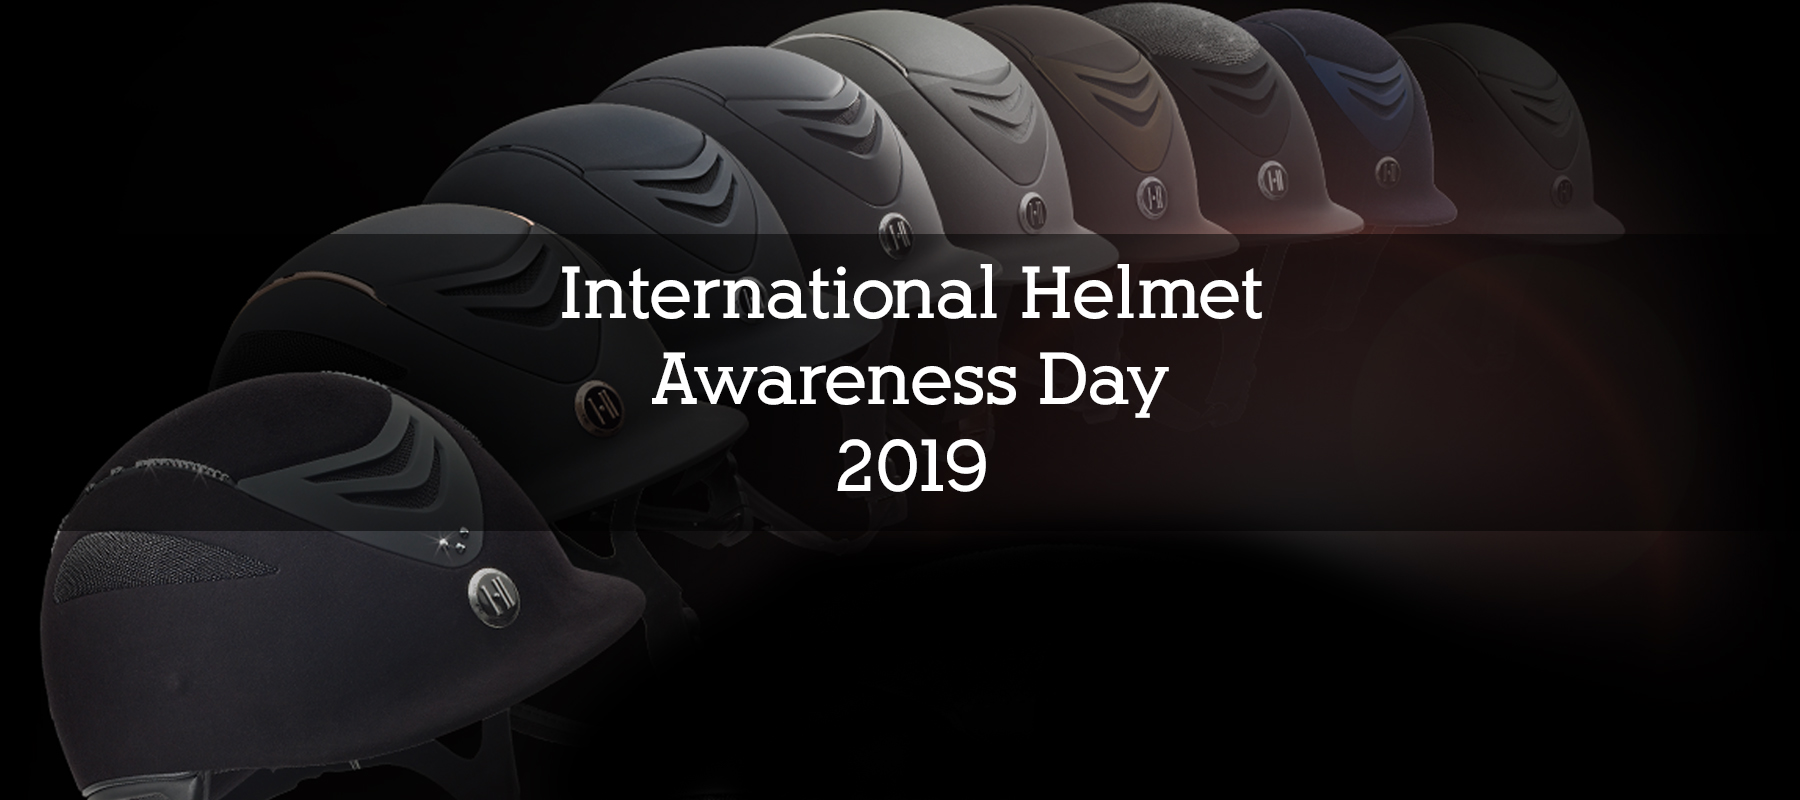 International Helmet Awareness Day 2019